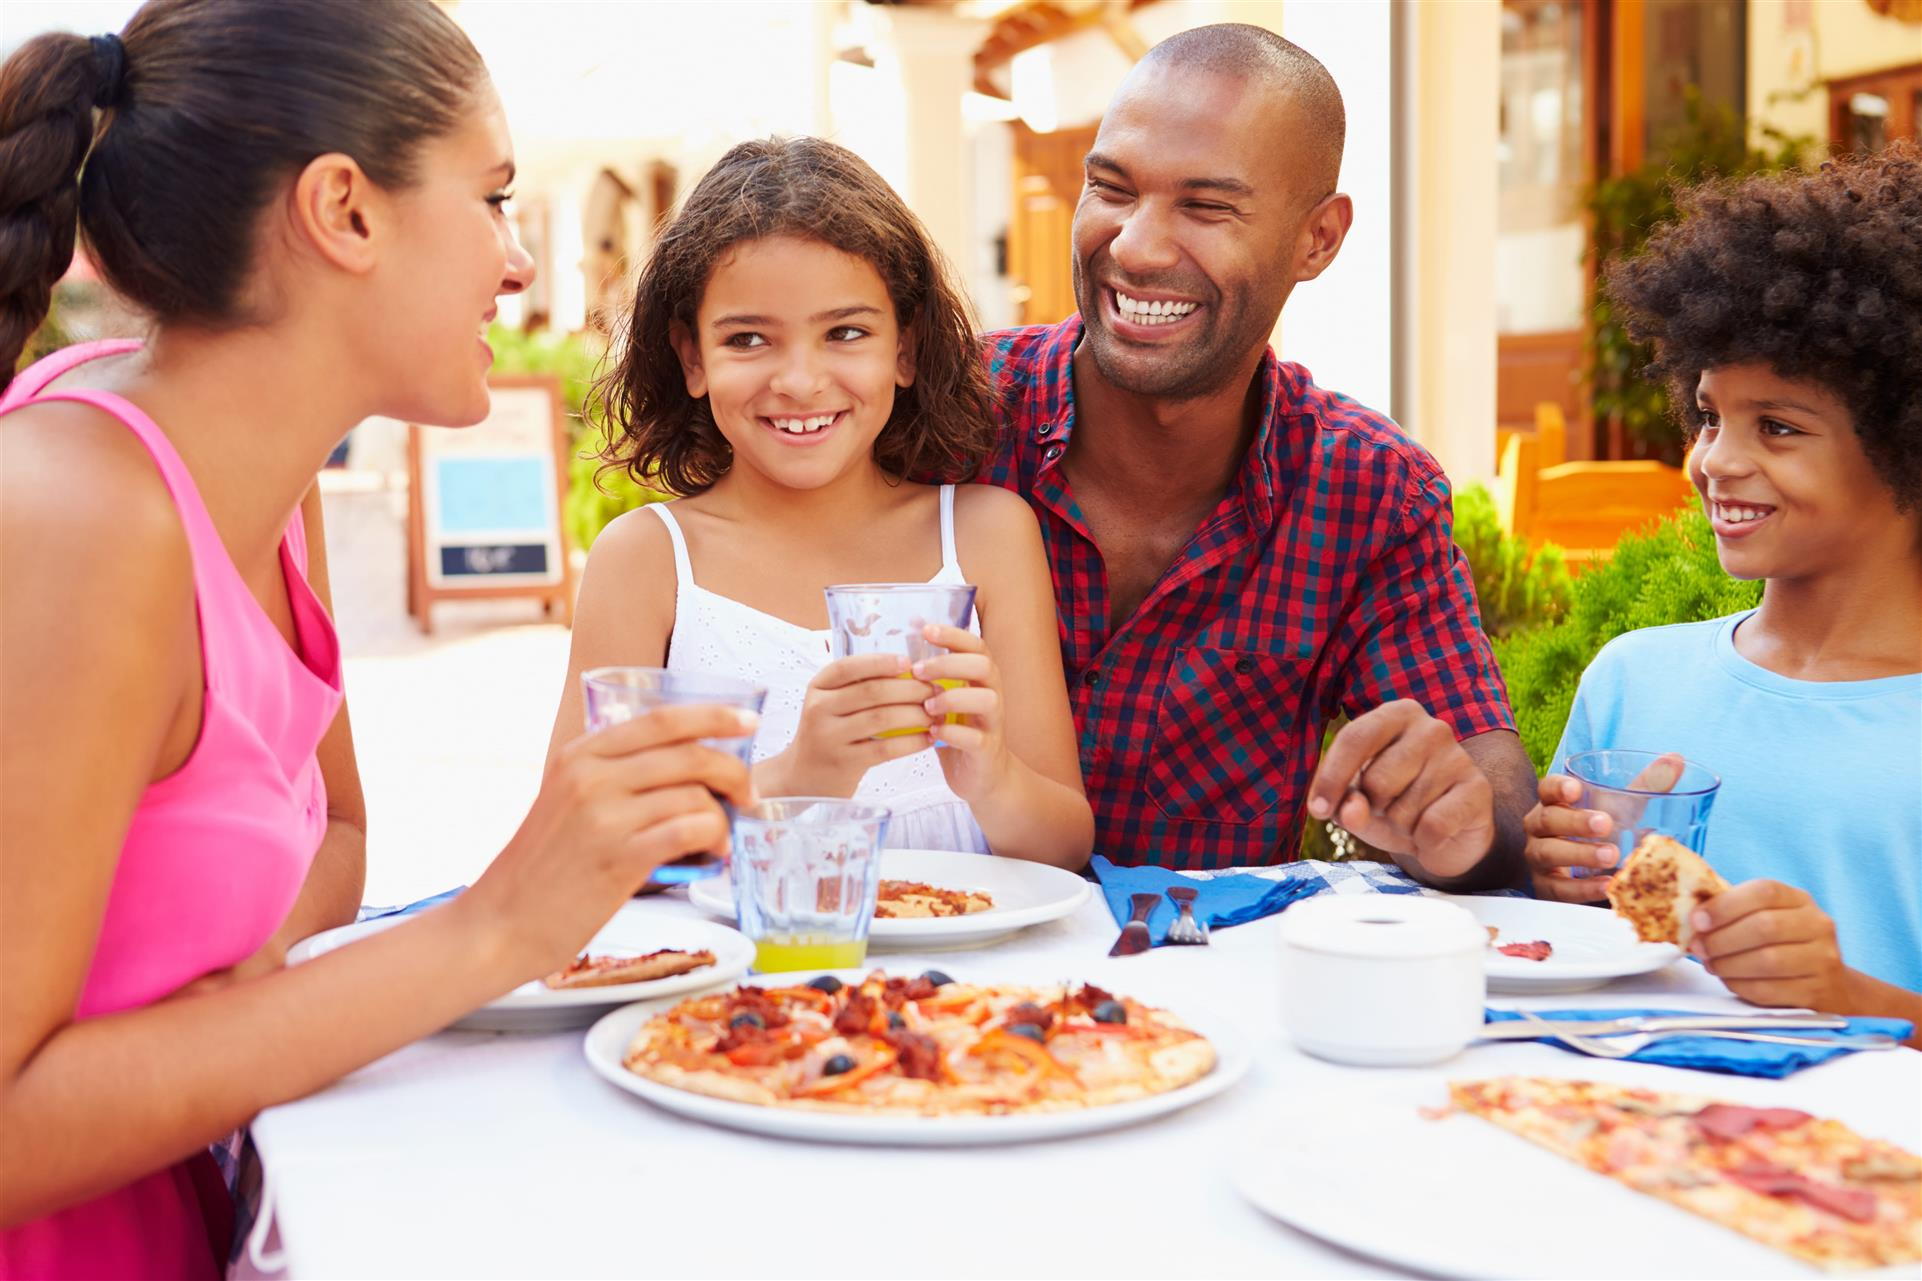 a family of four sitting at a table enjoying a meal